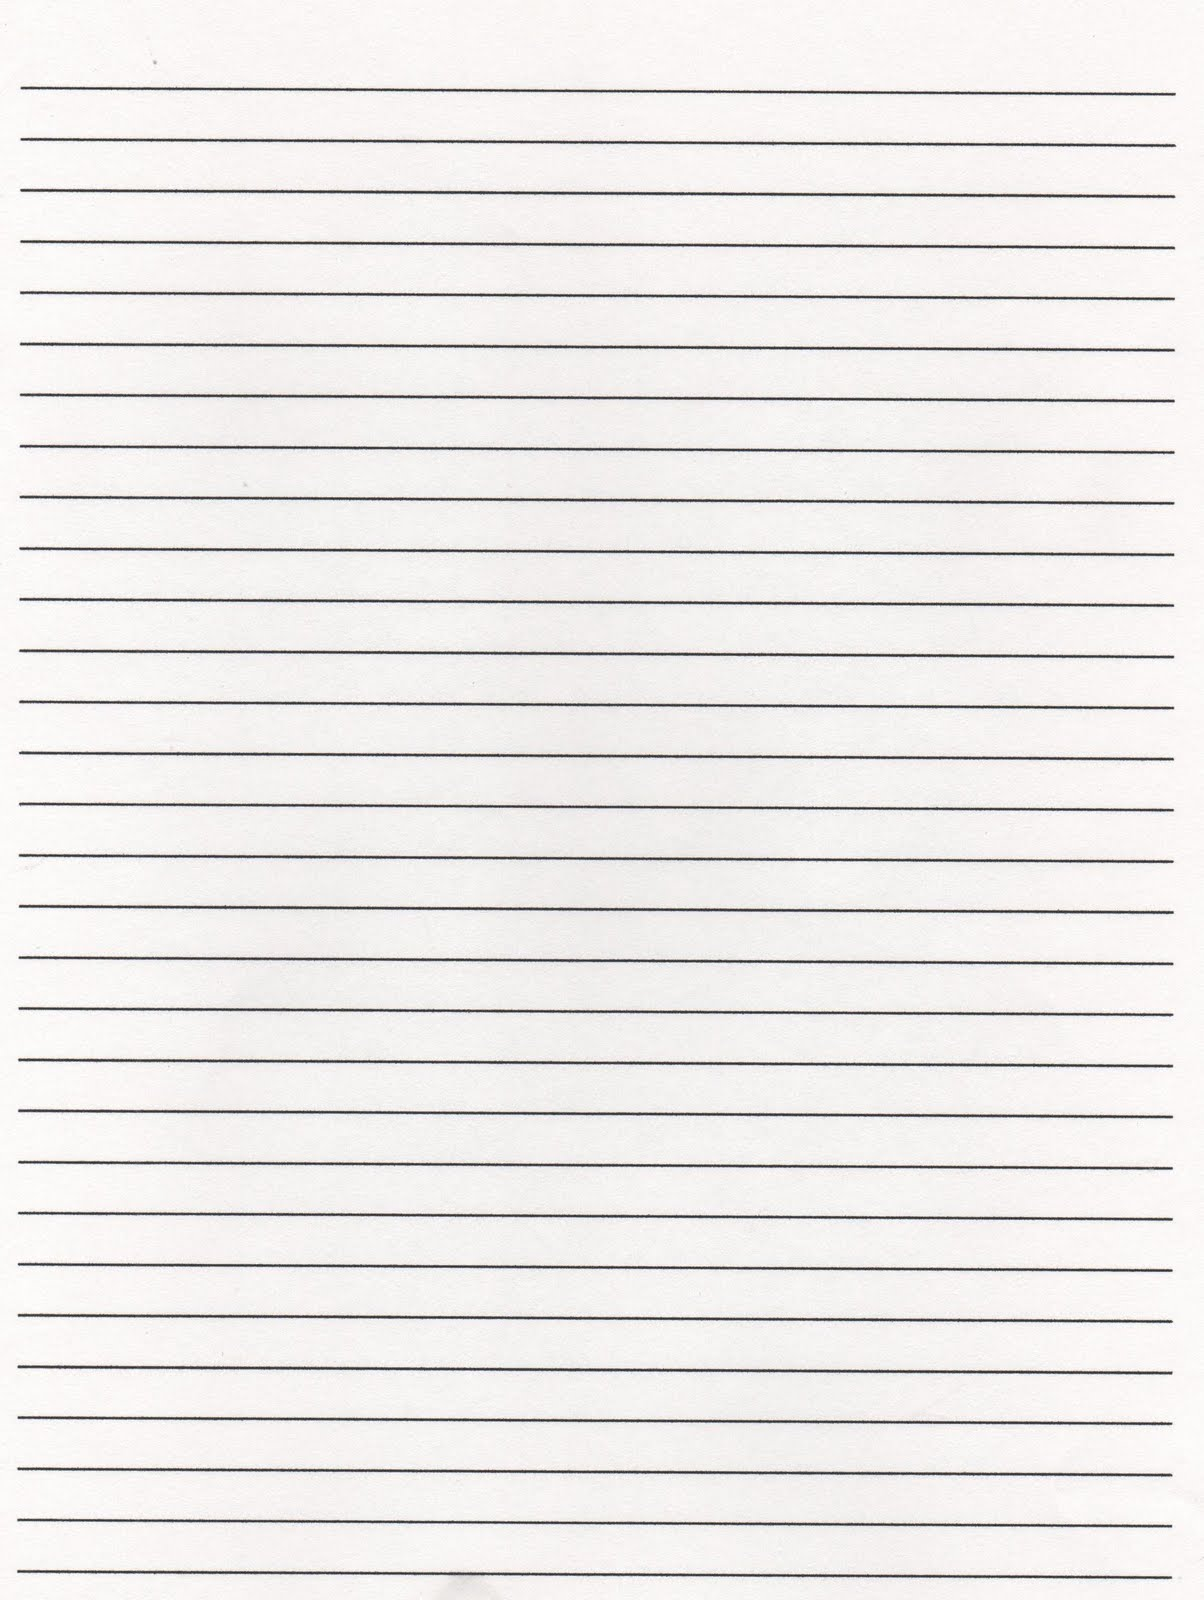 notebook paper template for word 2010 - elementary school enrichment activities lined paper